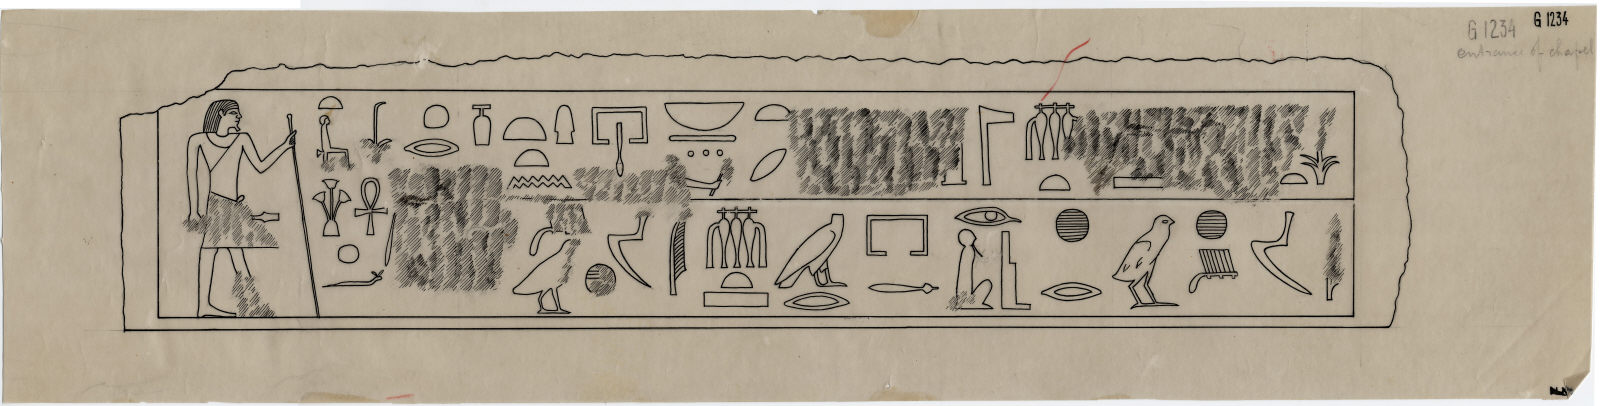 Drawings: G 1234: relief from chapel, entrance, lintel